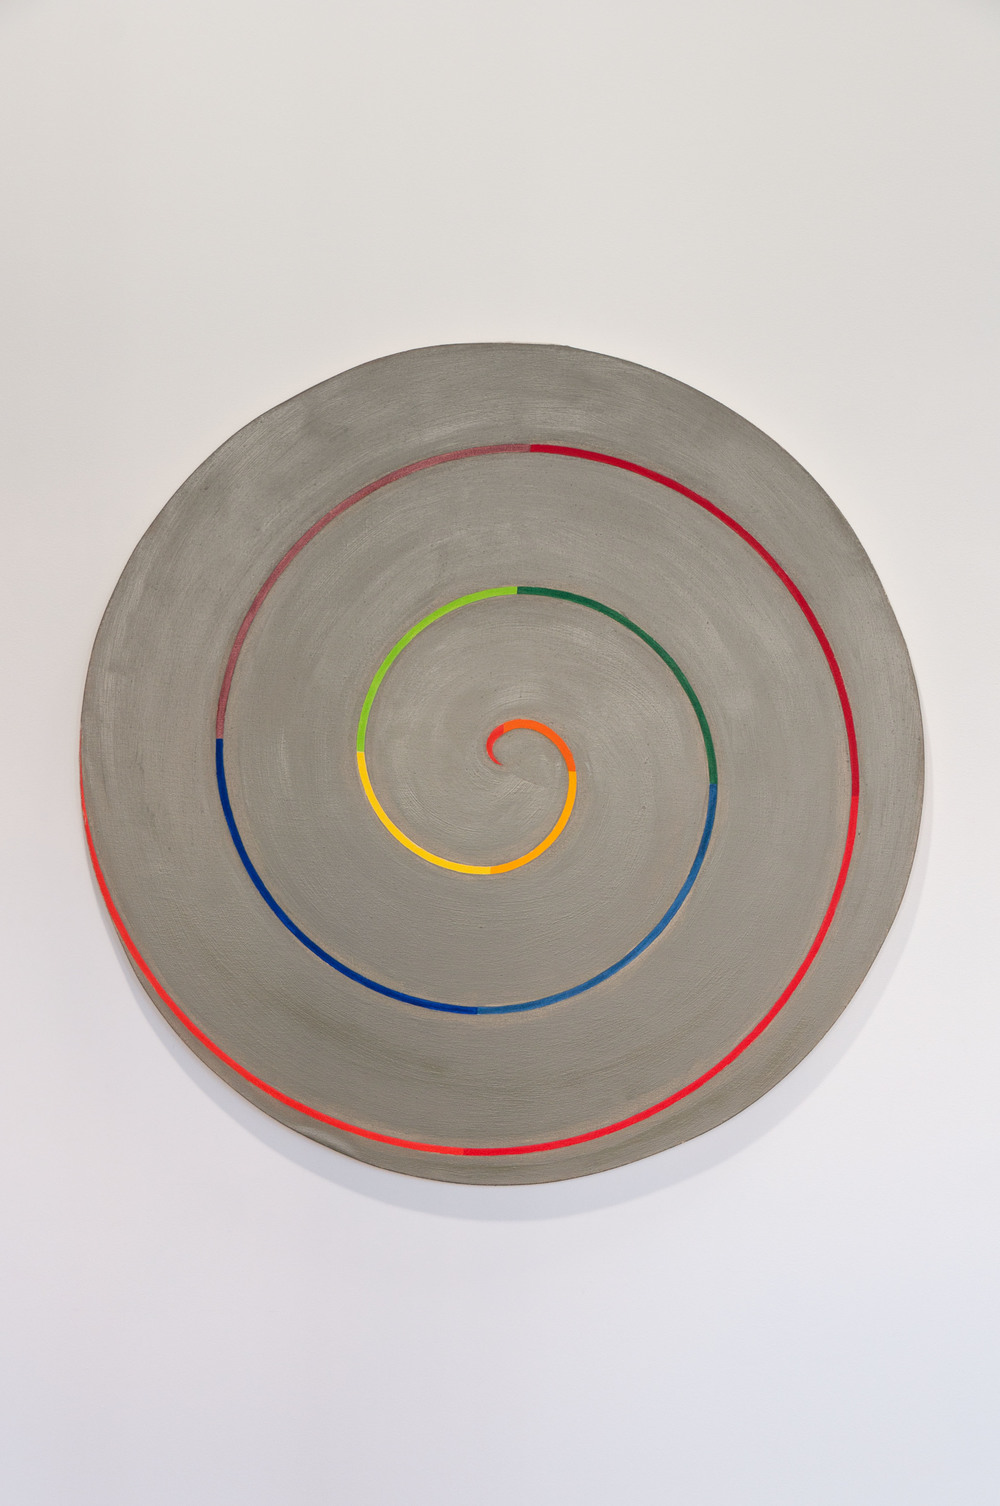 Paul Mogensen, no title (scarlet to scarlet on davy's gray), ca. 1975, Oil on canvas, 48 inches diameter, PMO7502   2/4  Lawrence Markey Inc.